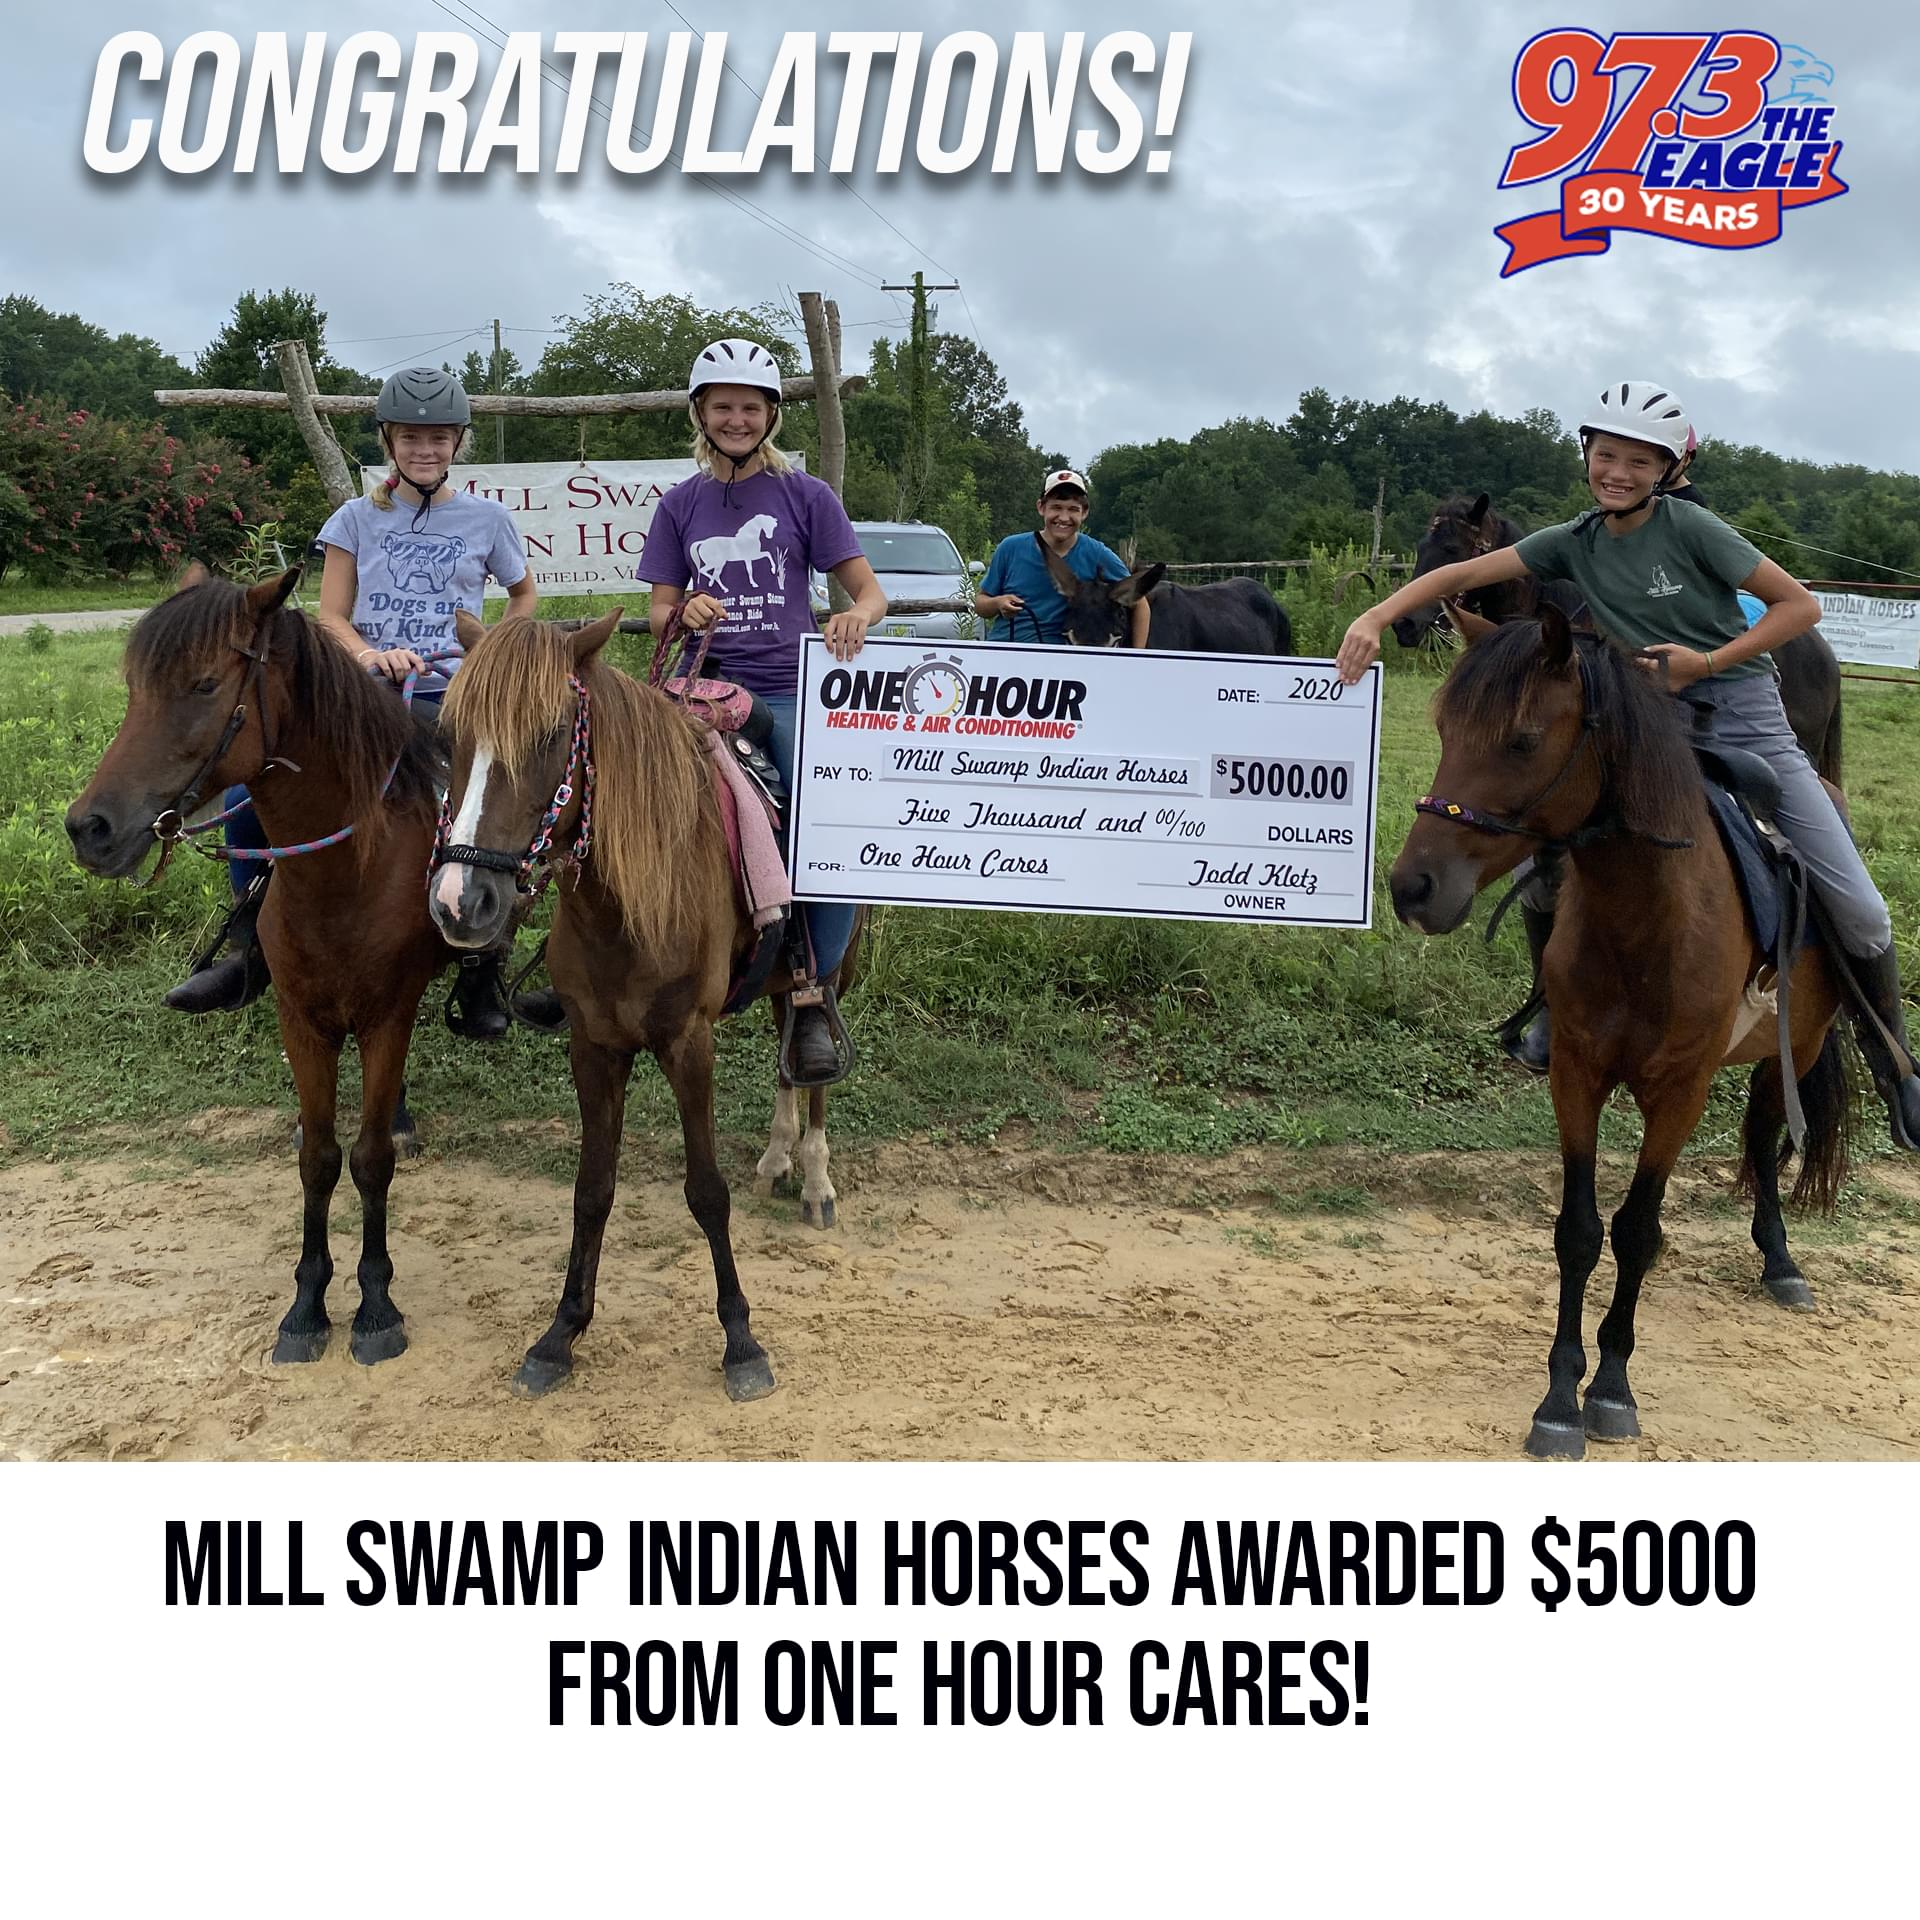 One Hour Cares Awards $5000 to Mill Swamp Indian Horses {LISTEN}